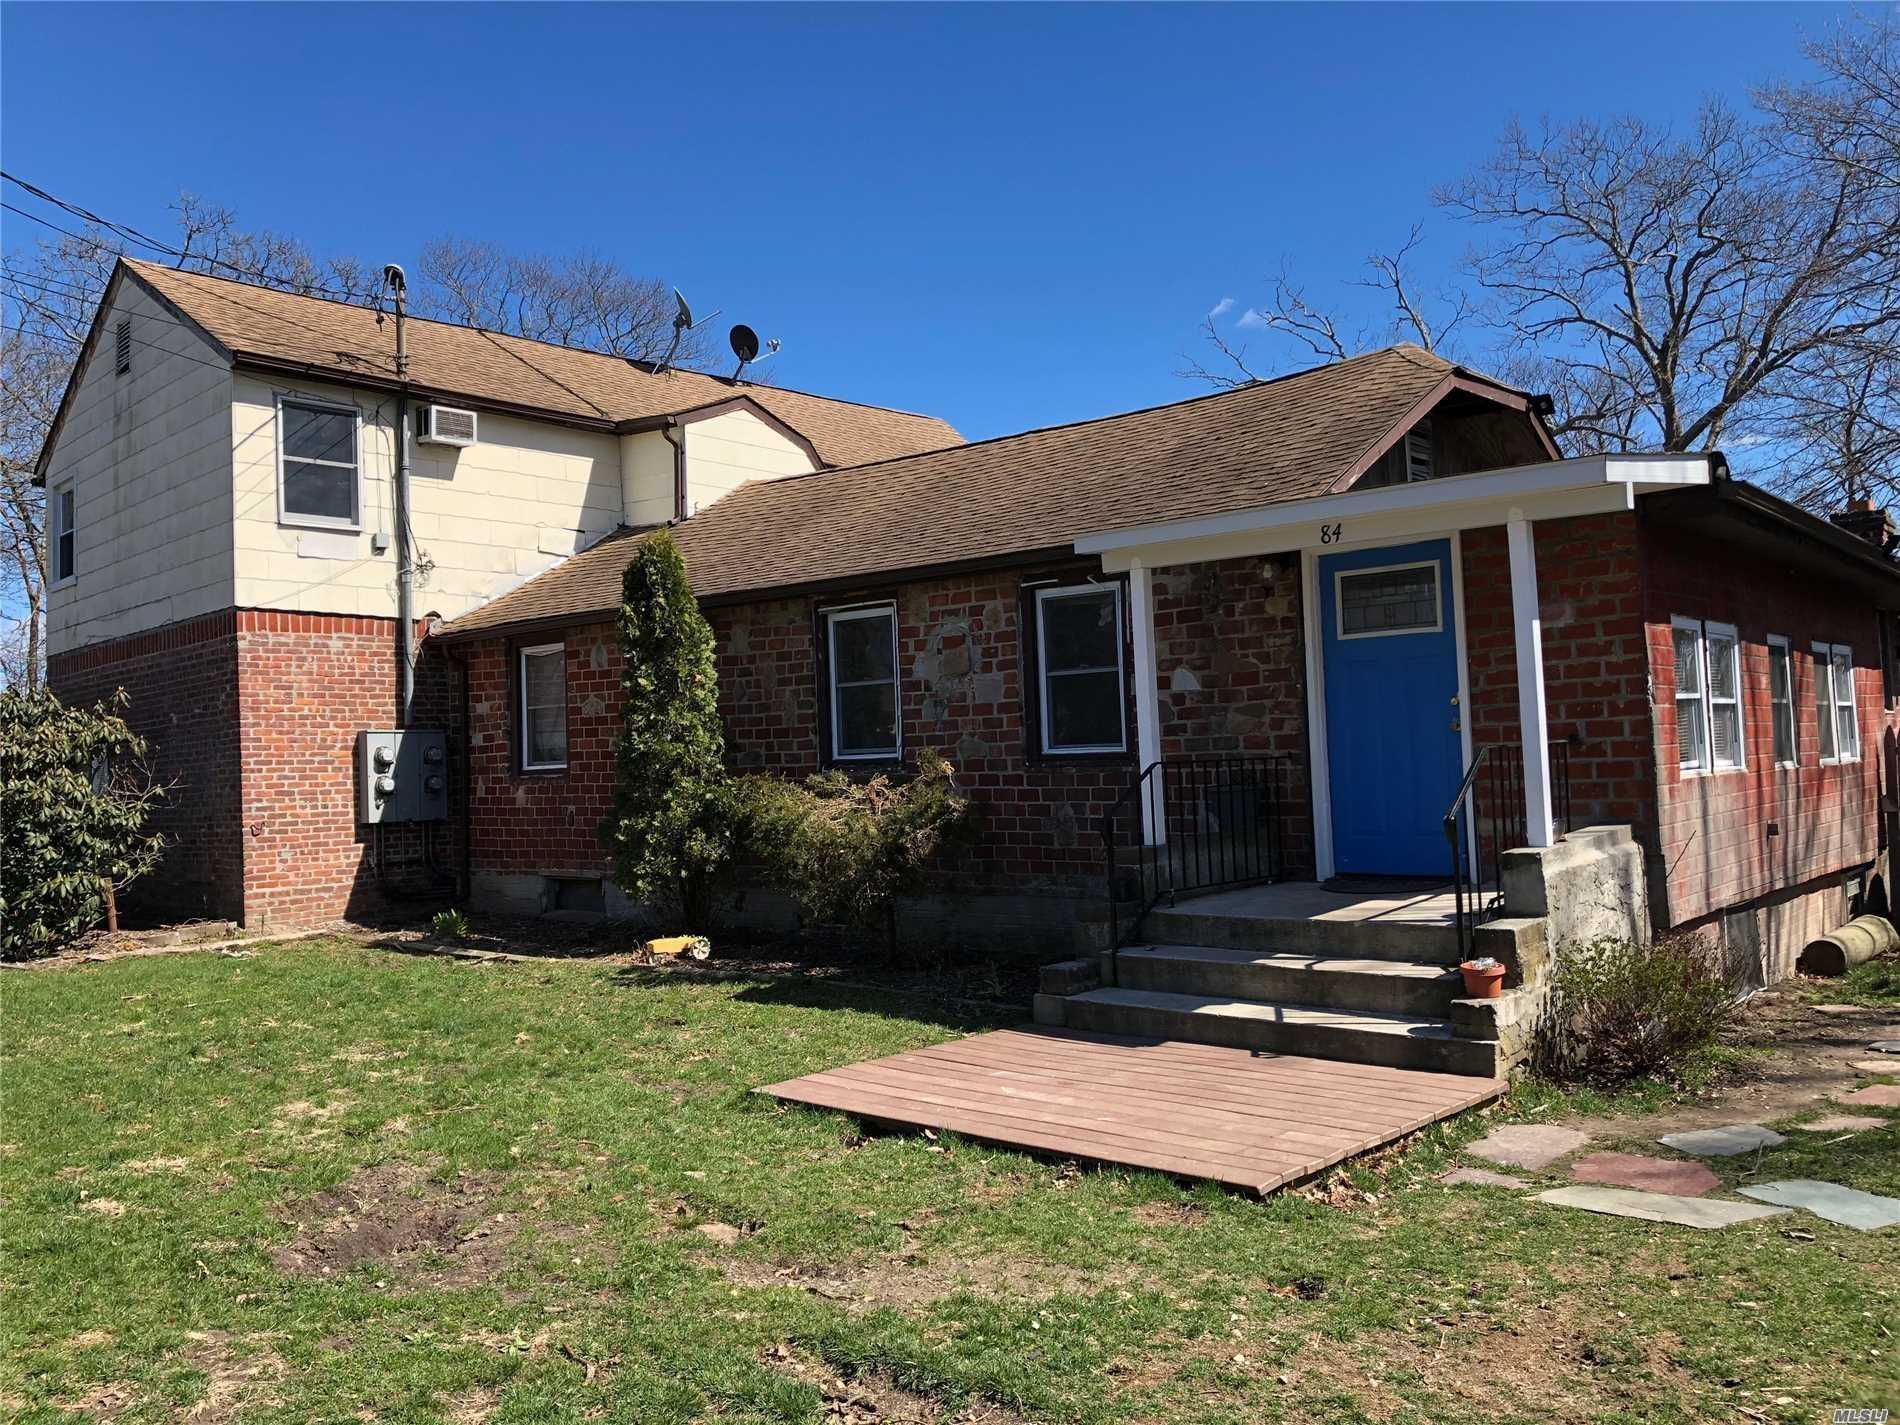 First Floor Of Duplex, Eik, Large Living Room, 3 Large Bedrooms, Private Entrance With Use Of Yard. Share Driveway With 2nd Floor Tenant. 1 Pet Is Allowed.